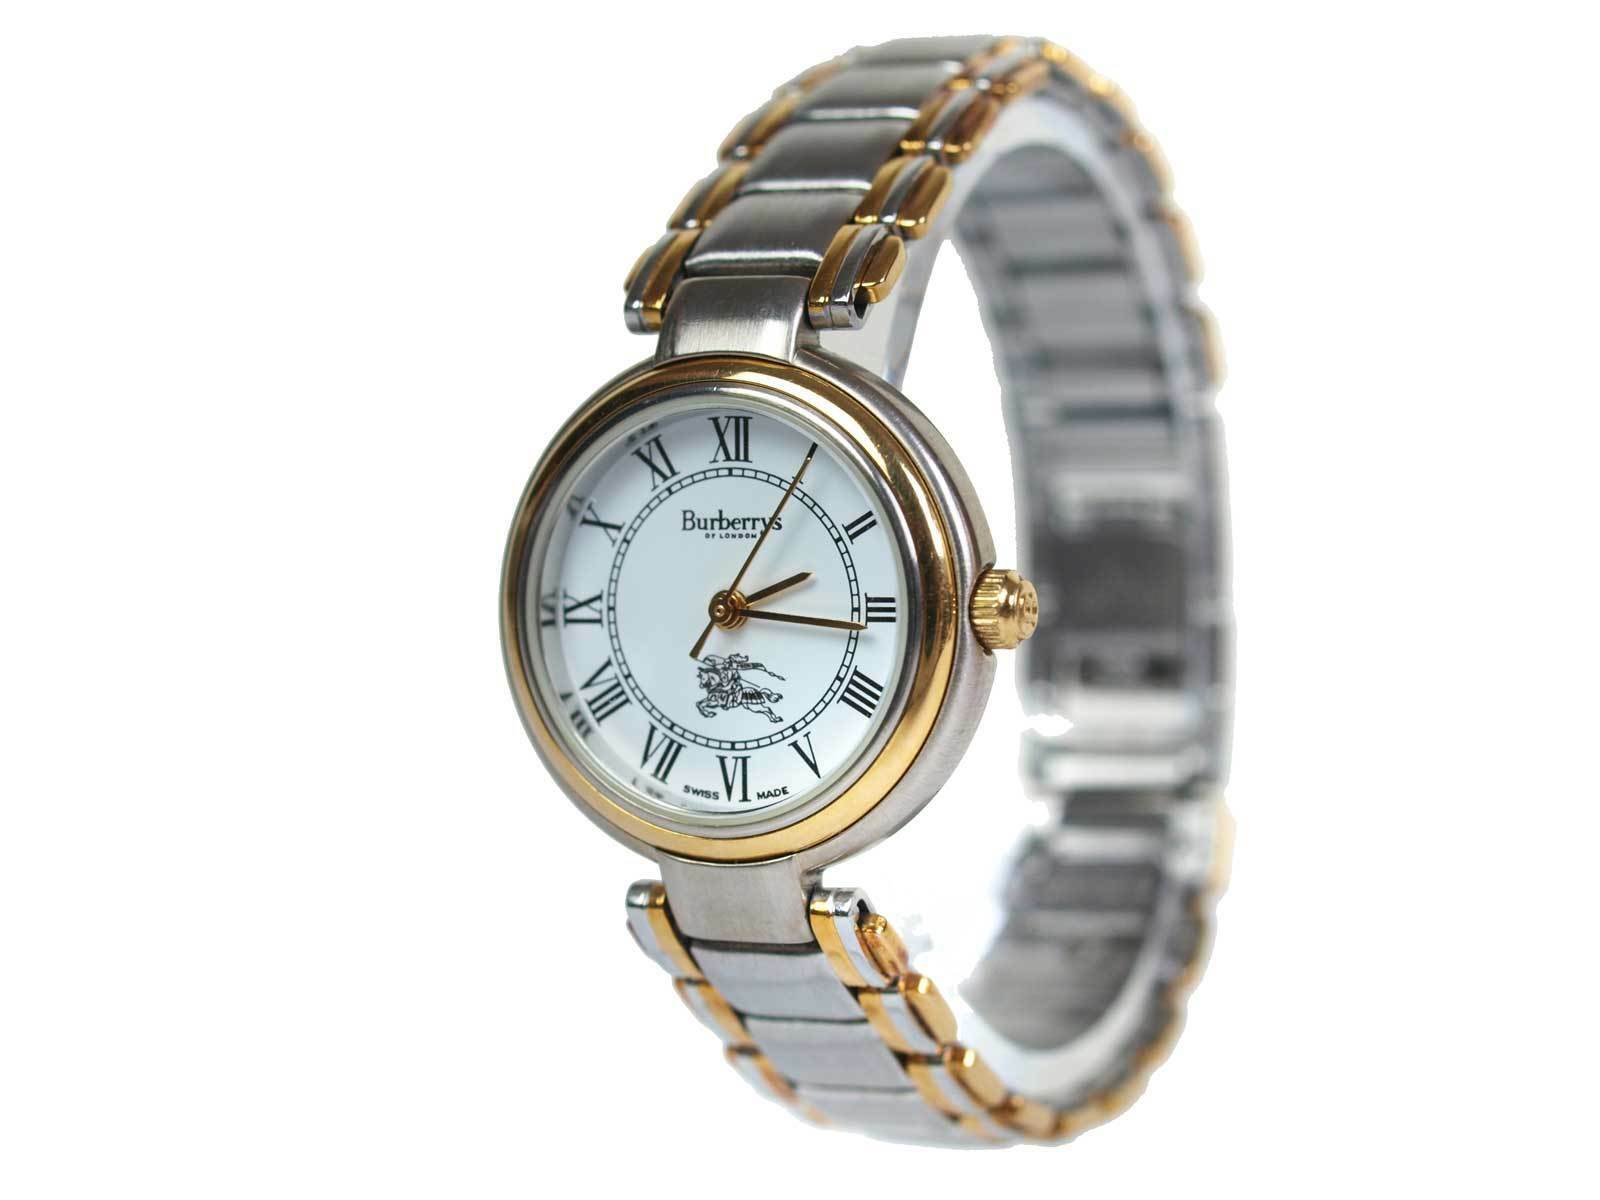 Auth BURBERRY 8000 White Dial Gold Plated Band Quartz Women's Watch BW6953L